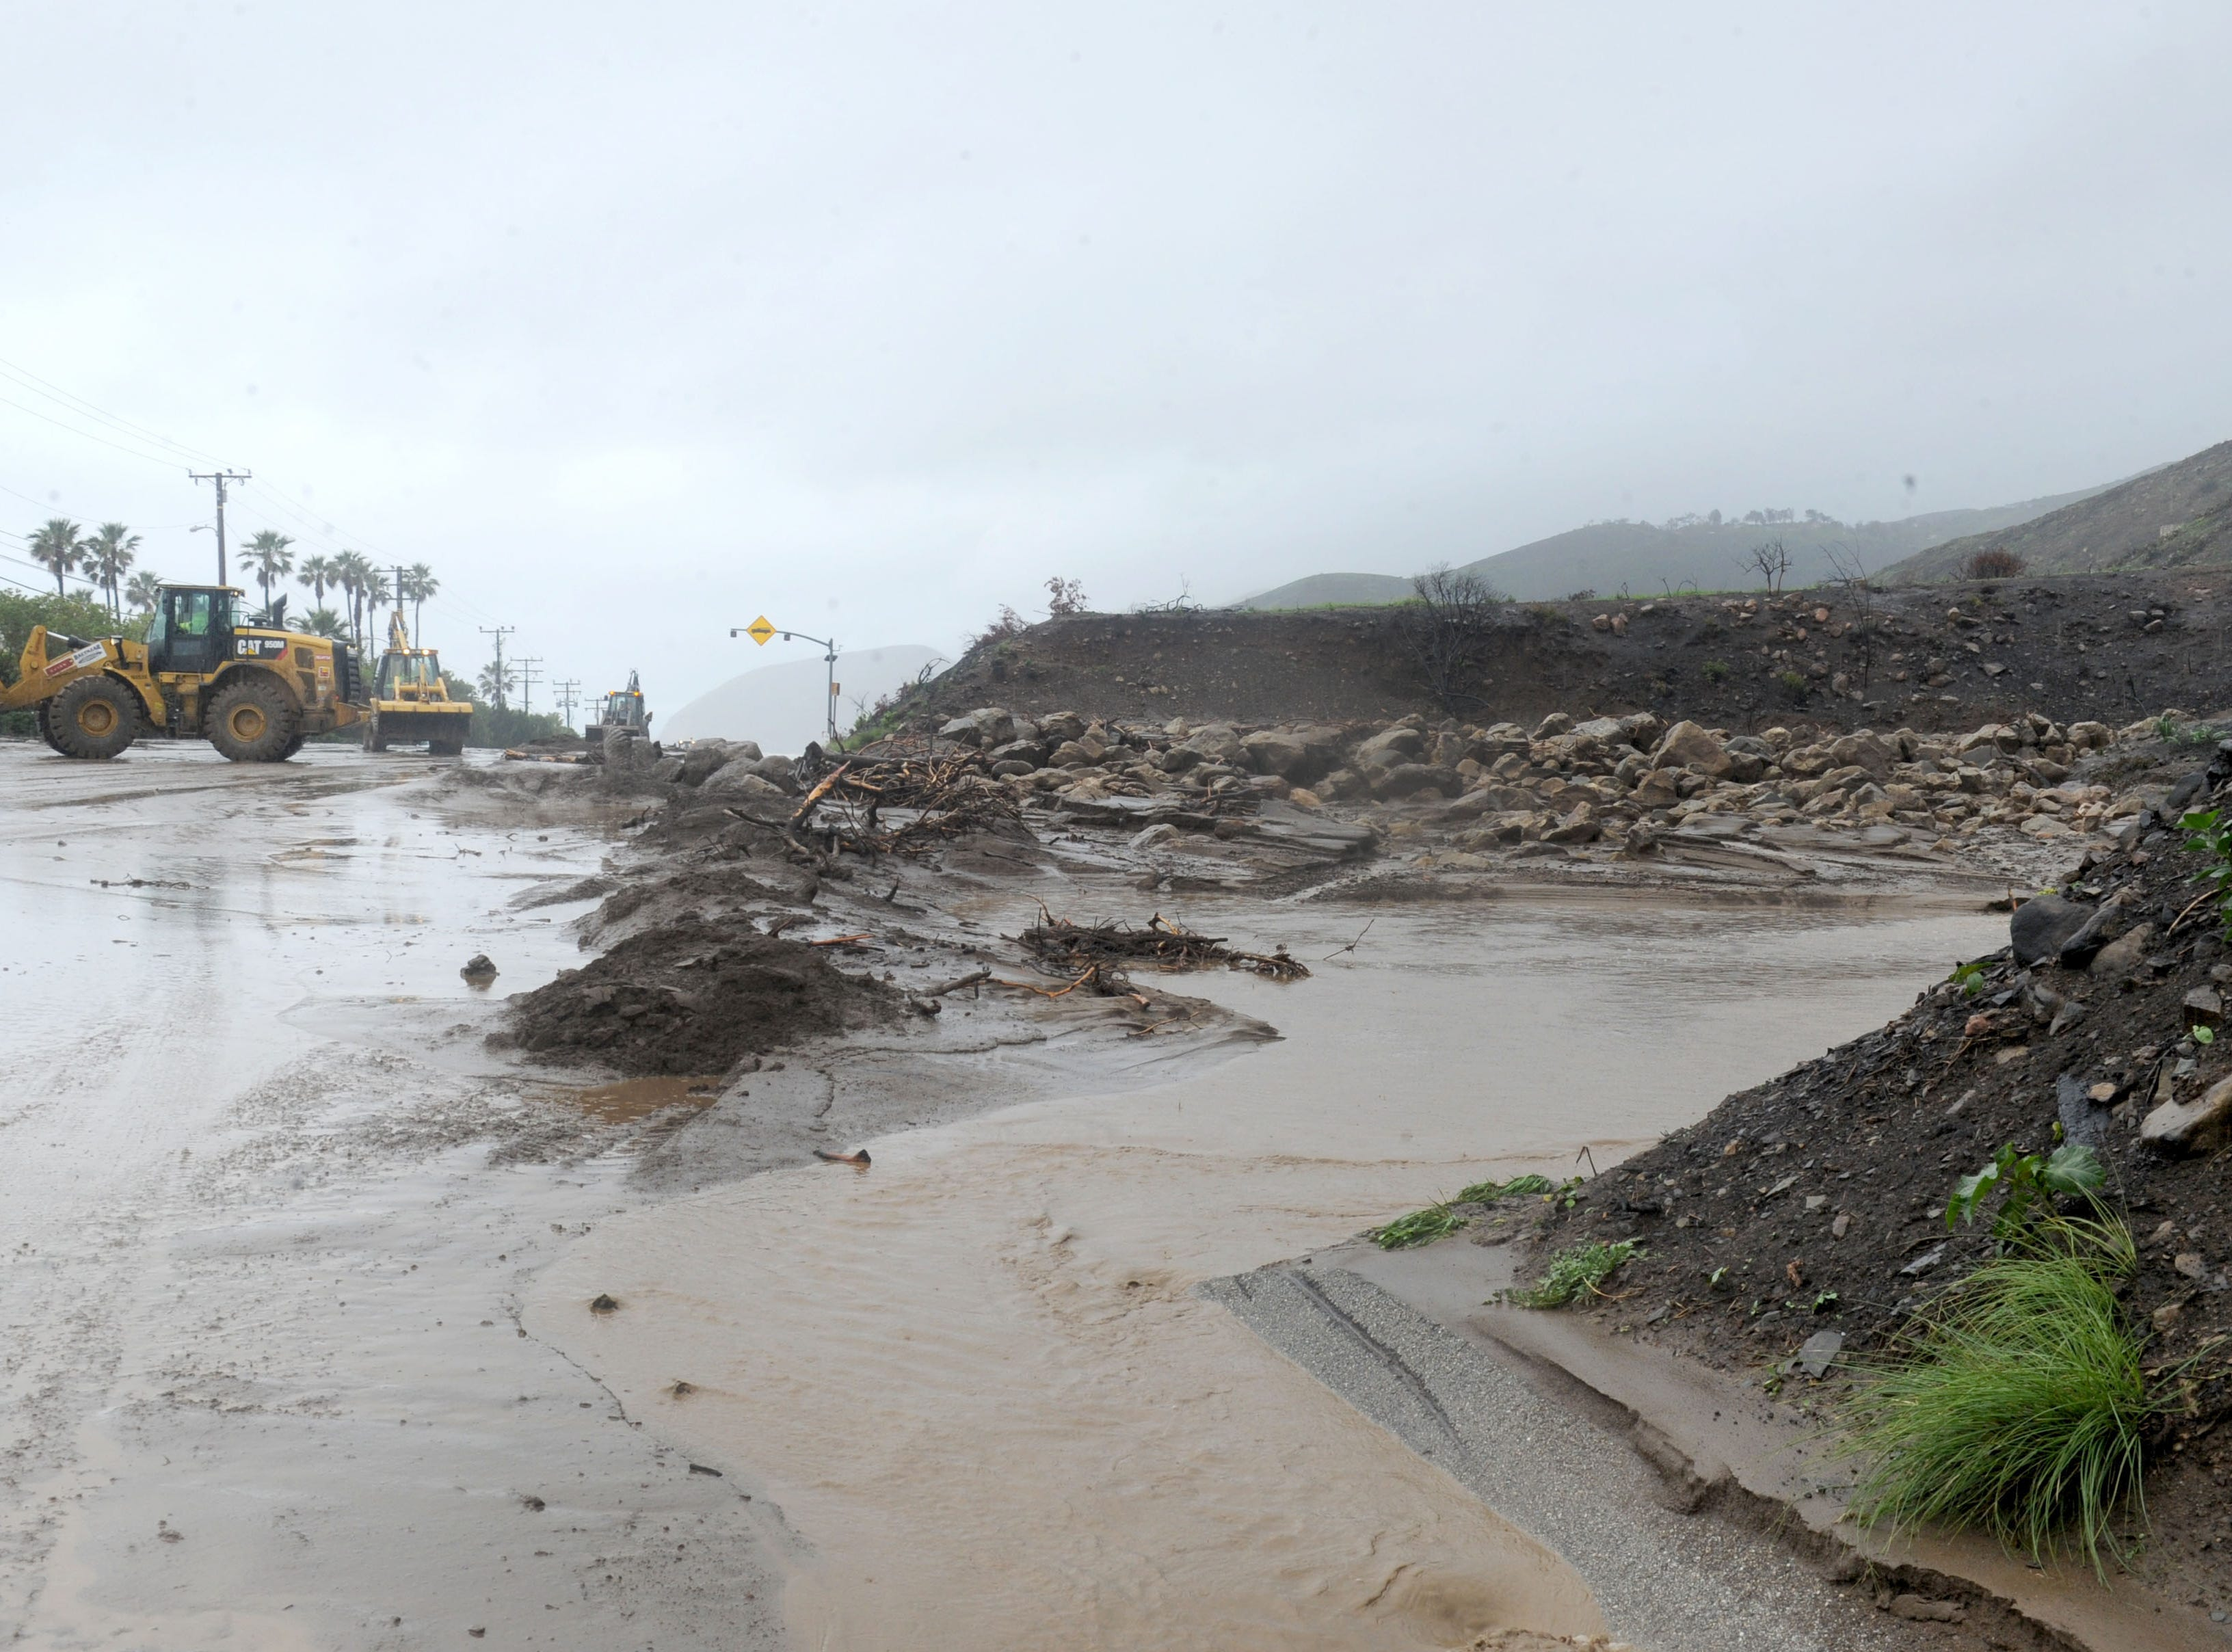 Saturday's storms brought these rocks down a canyon close to the Malibu Bay Club on Pacific Coast Highway. The storm closed the highway near Leo Carrillo State Beach.